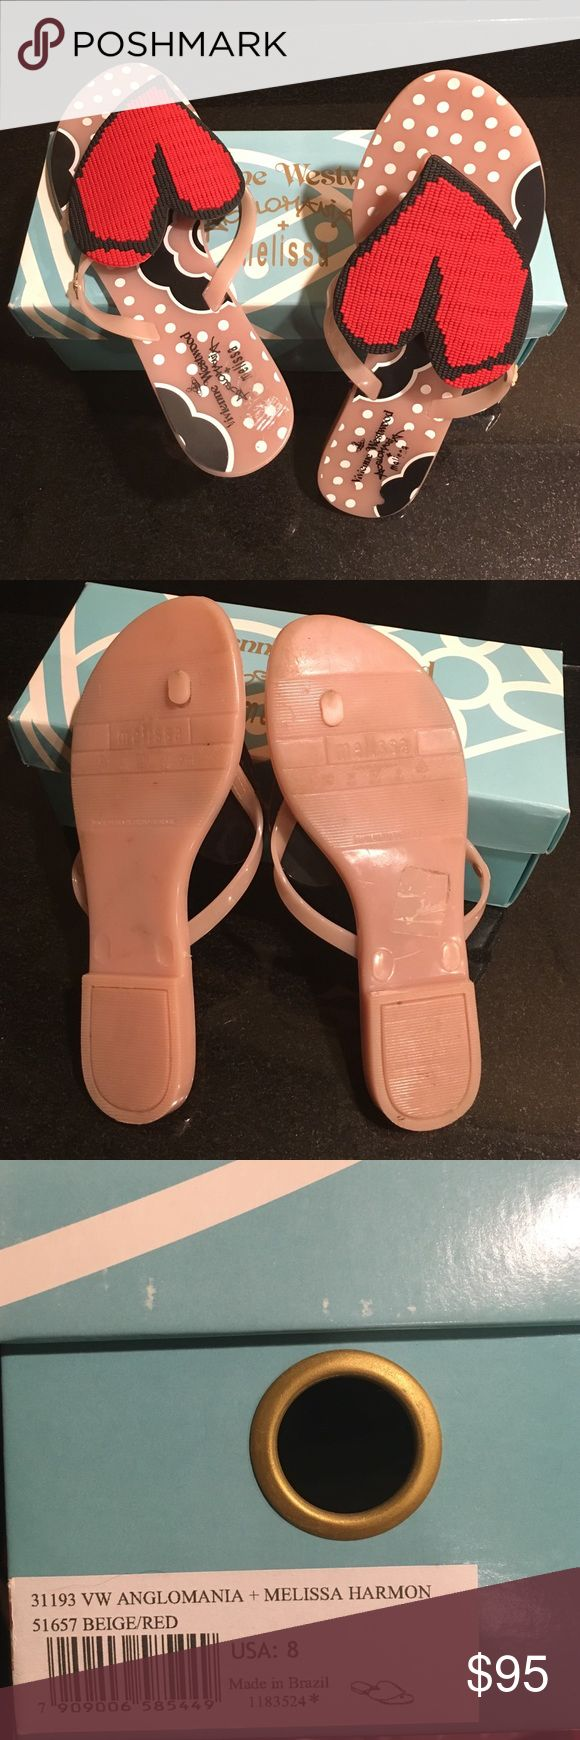 Vivienne Westwood heart flip flops. Nude and red rubber flip flops. Practically new! Worn once. Has box and dust bag. Vivienne westwood  Shoes Sandals